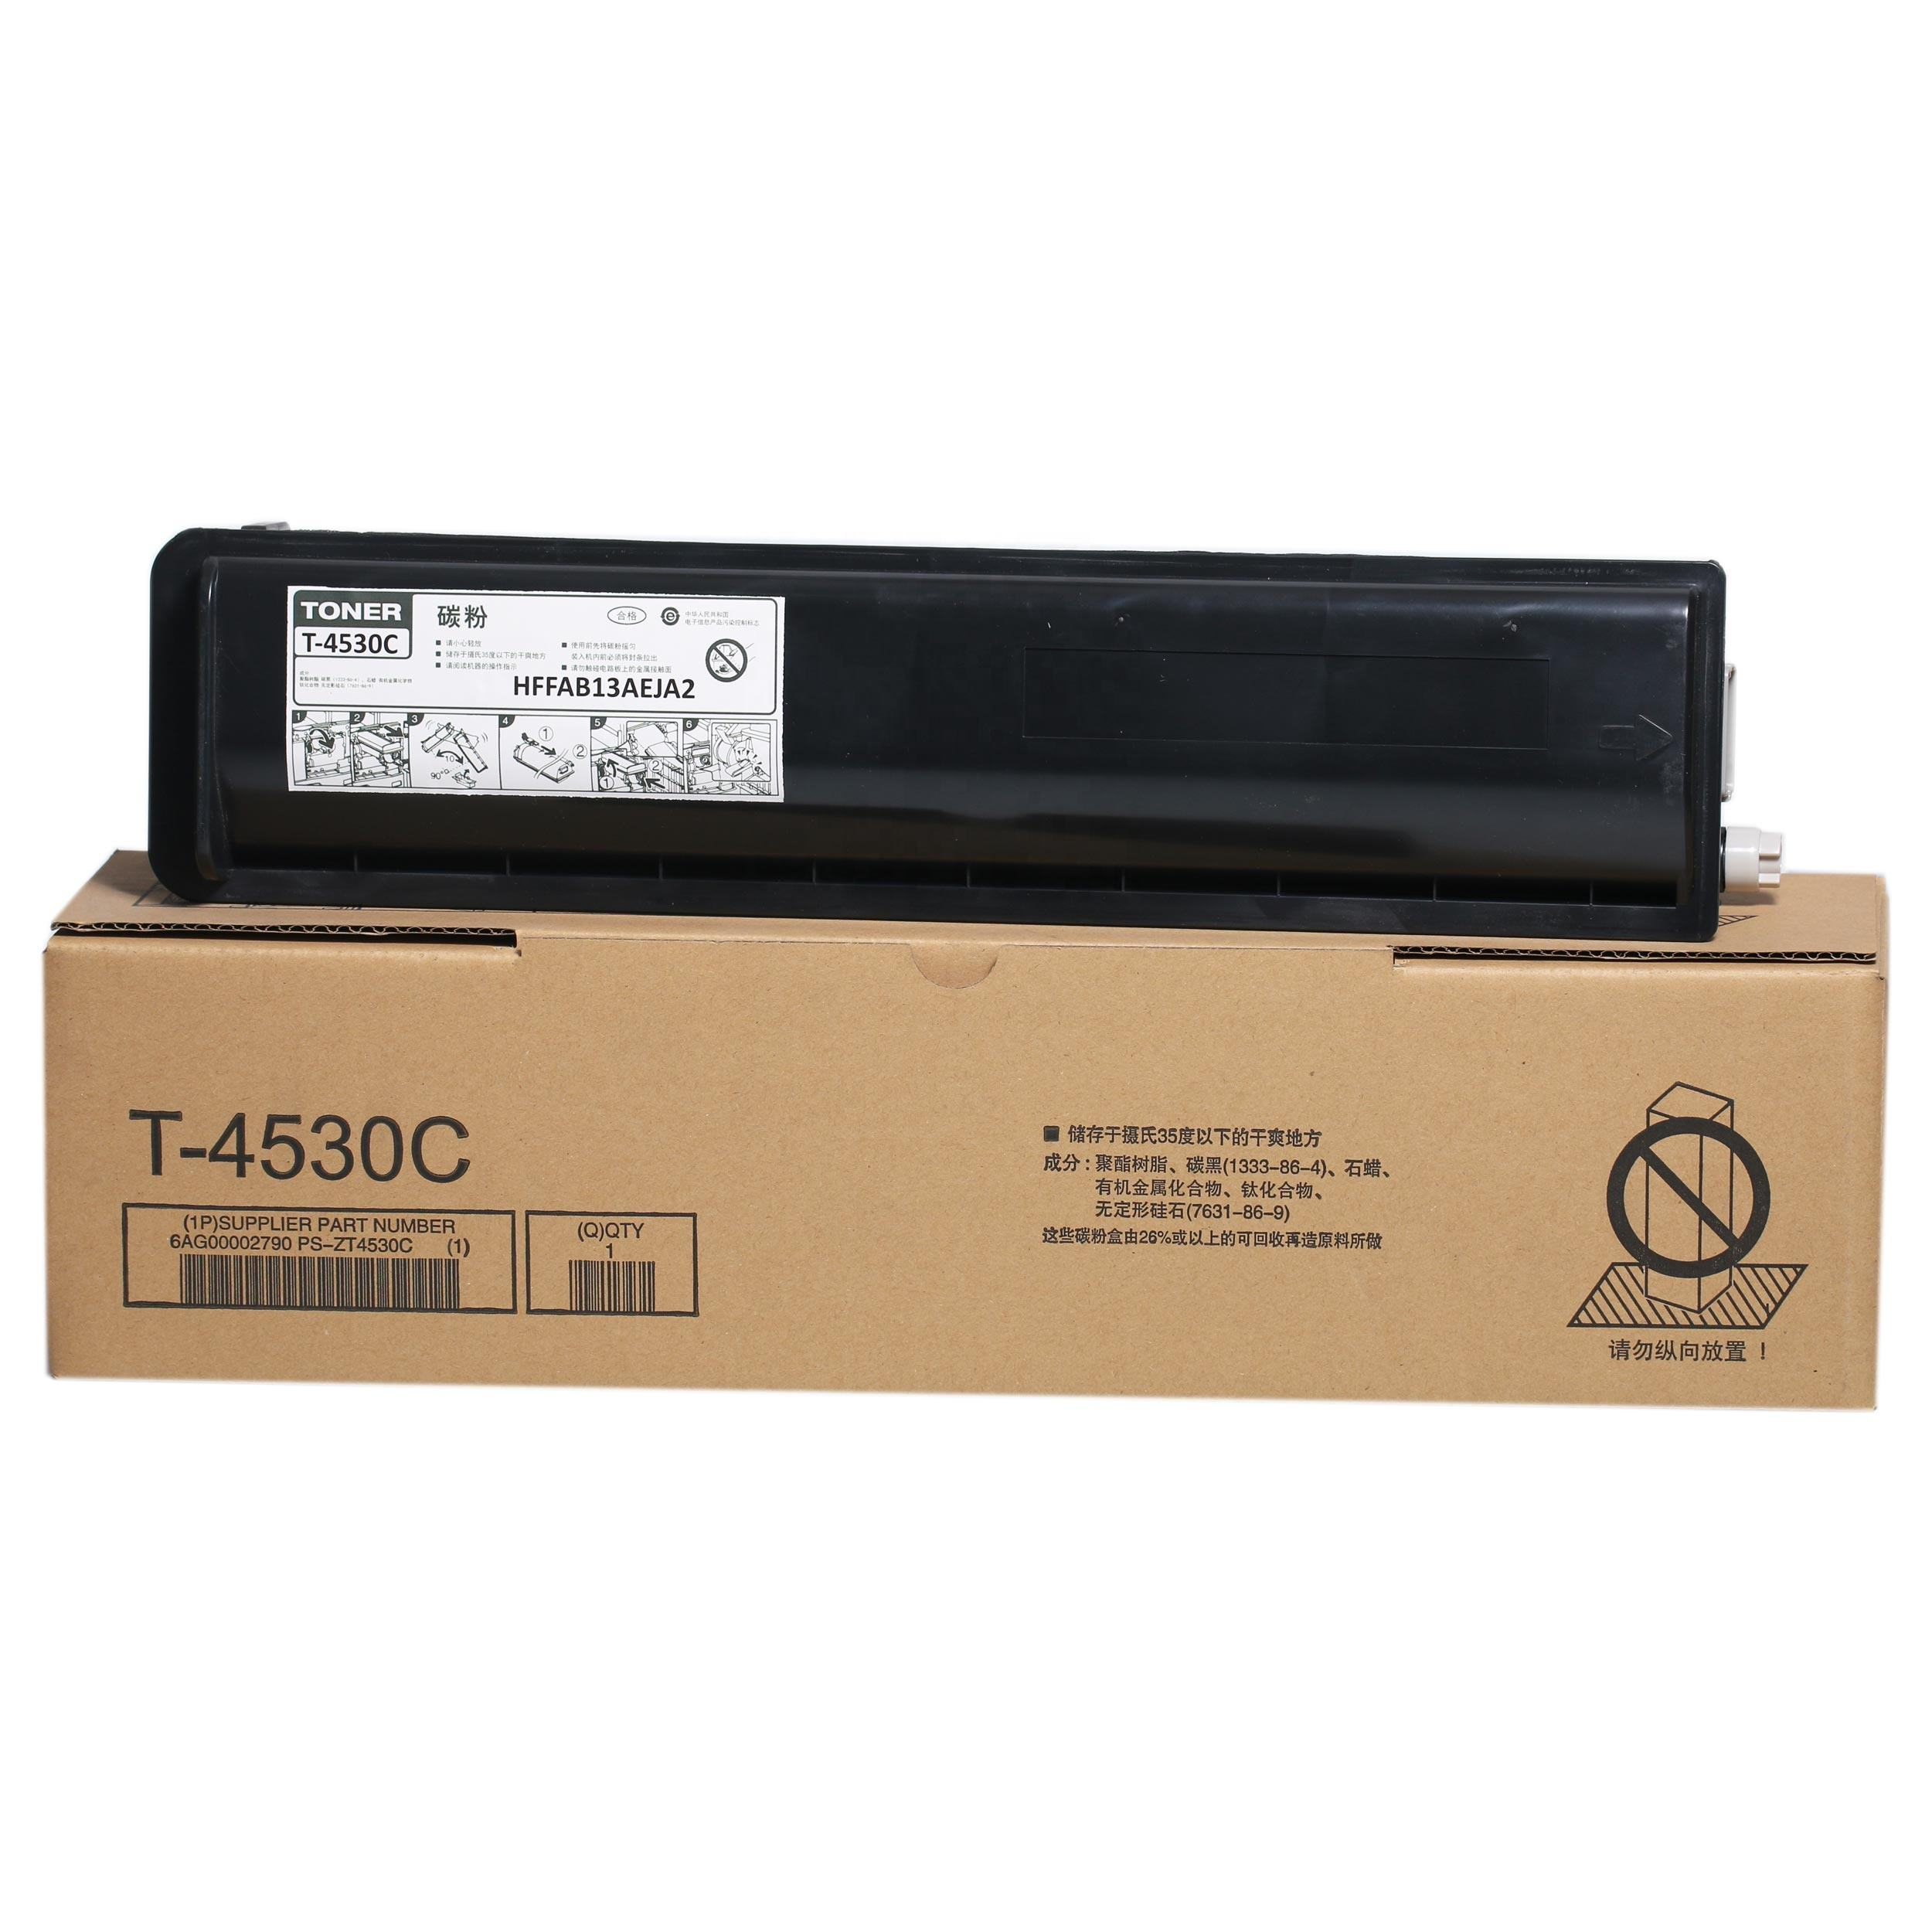 Compatible copier toner T-4530 for use in Toshibas E-STUDIO 255/305/355/455